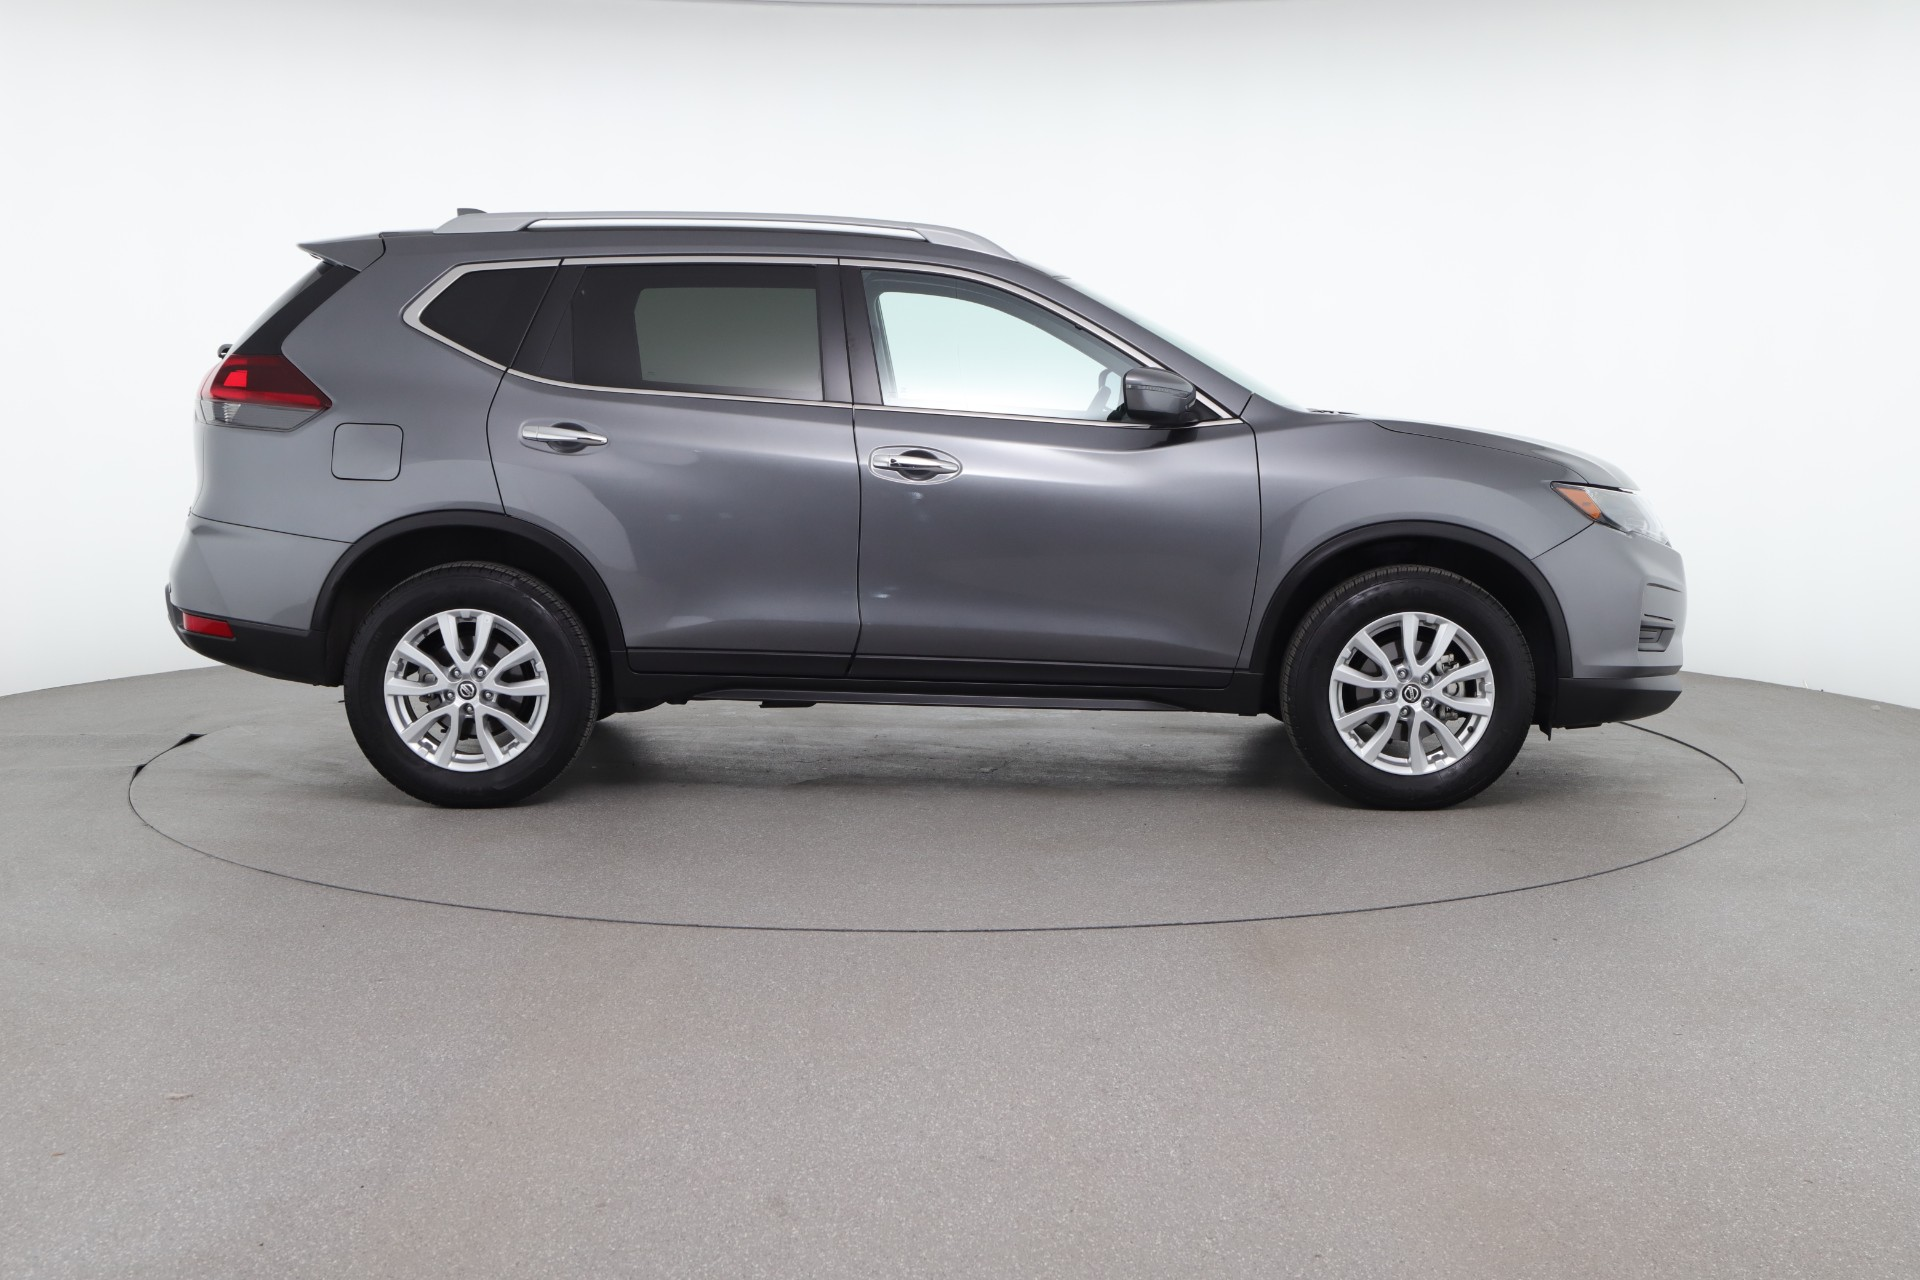 How Much is a Nissan Rogue? Models, Price and Reviews